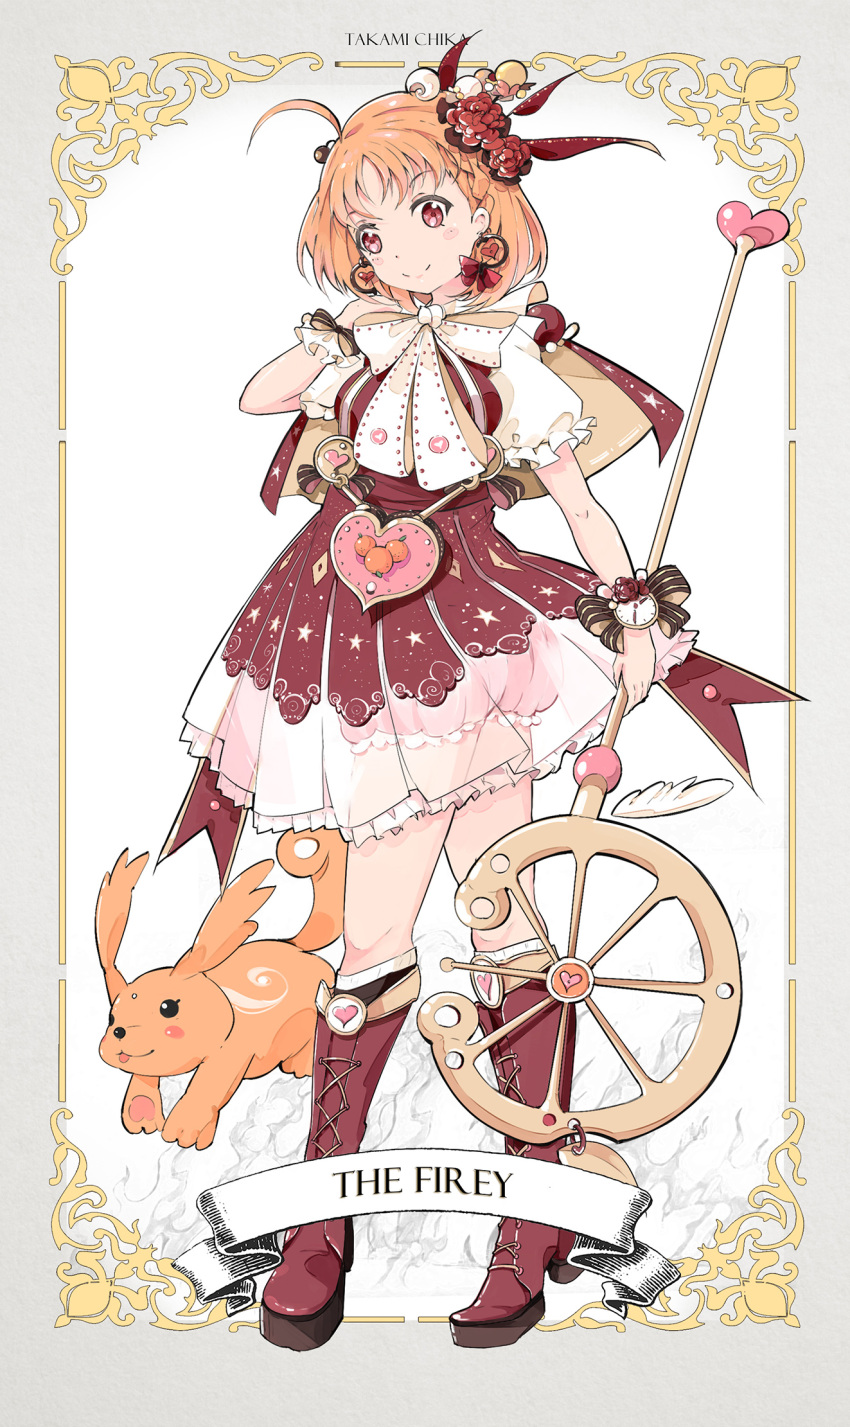 1girl ahoge bangs bloomers blush_stickers boots bow bowtie braid capelet character_name clock creature cross-laced_footwear dress earrings english feathers flower frilled_sleeves frills hair_bobbles hair_feathers hair_flower hair_ornament hair_stick hand_on_own_shoulder heart heart_earrings heart_print highres holding holding_staff jewelry knee_boots love_live! love_live!_sunshine!! orange_hair orange_print pouch qianqian red_eyes red_flower red_footwear sash short_hair side_braid smile solo staff striped striped_bow takami_chika underwear white_neckwear wrist_bow wrist_cuffs